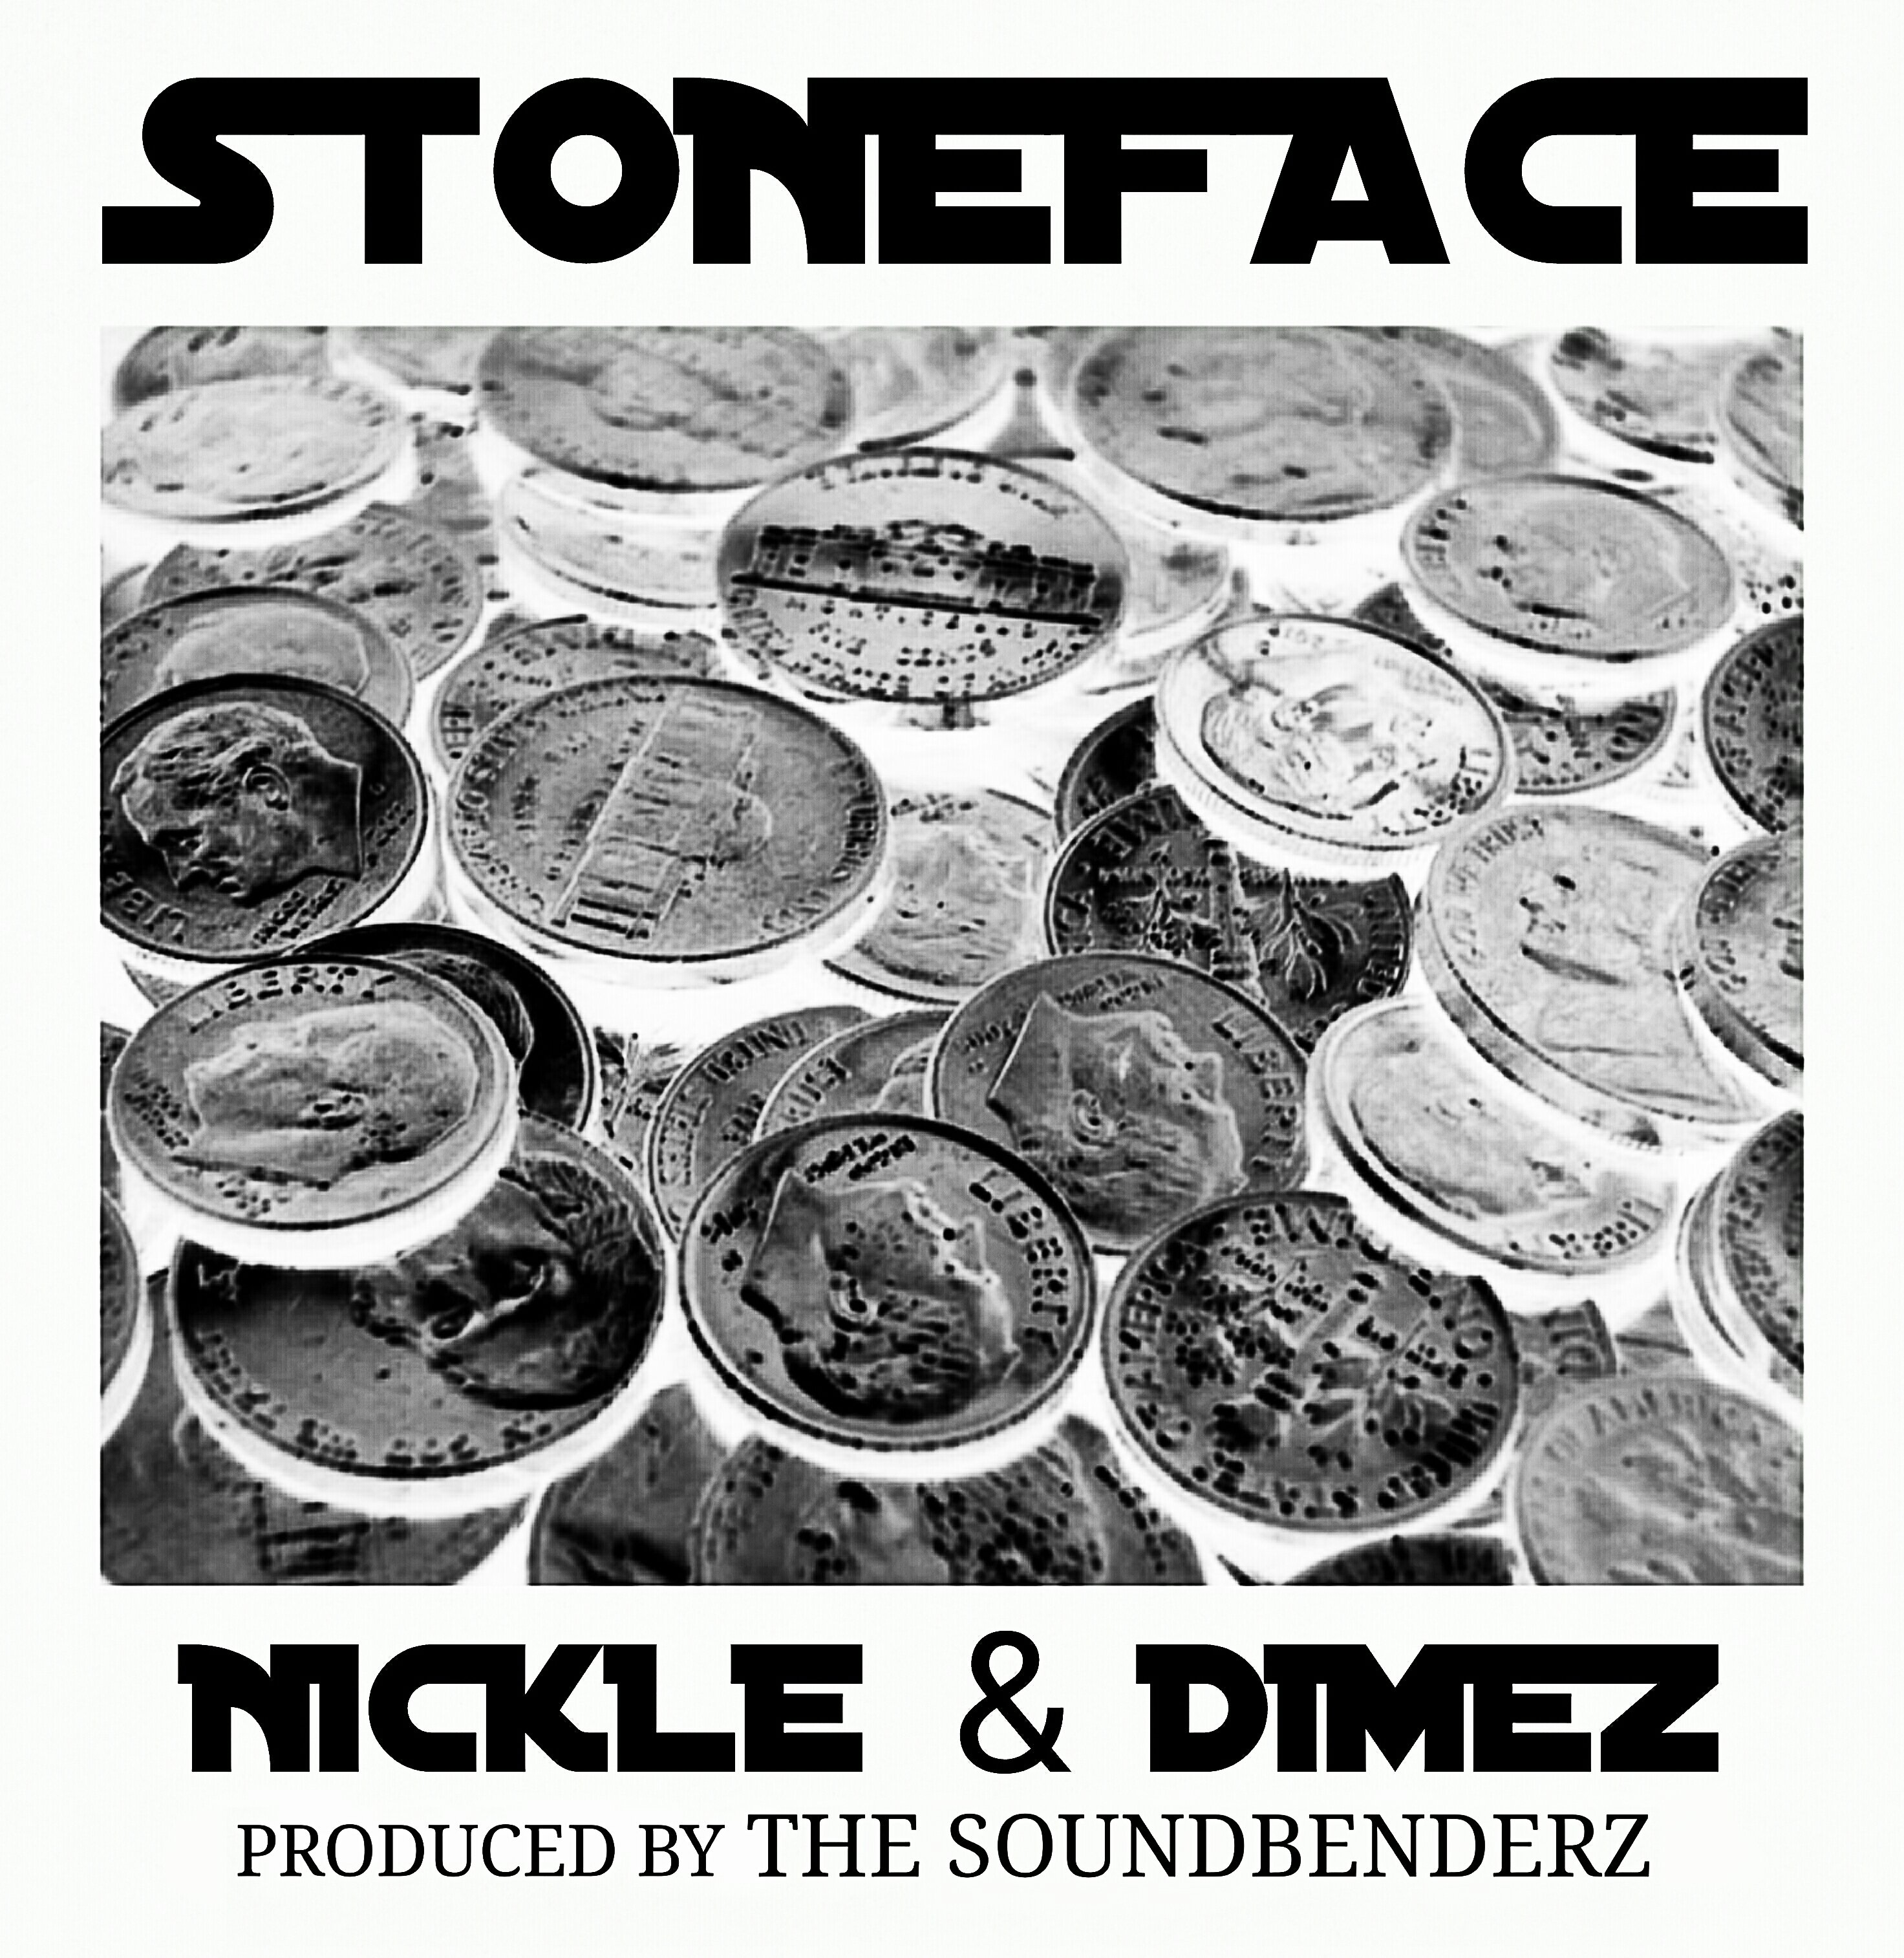 Stoneface - Nickle & Dimez (Prod by The Soundbenderz) [audio]